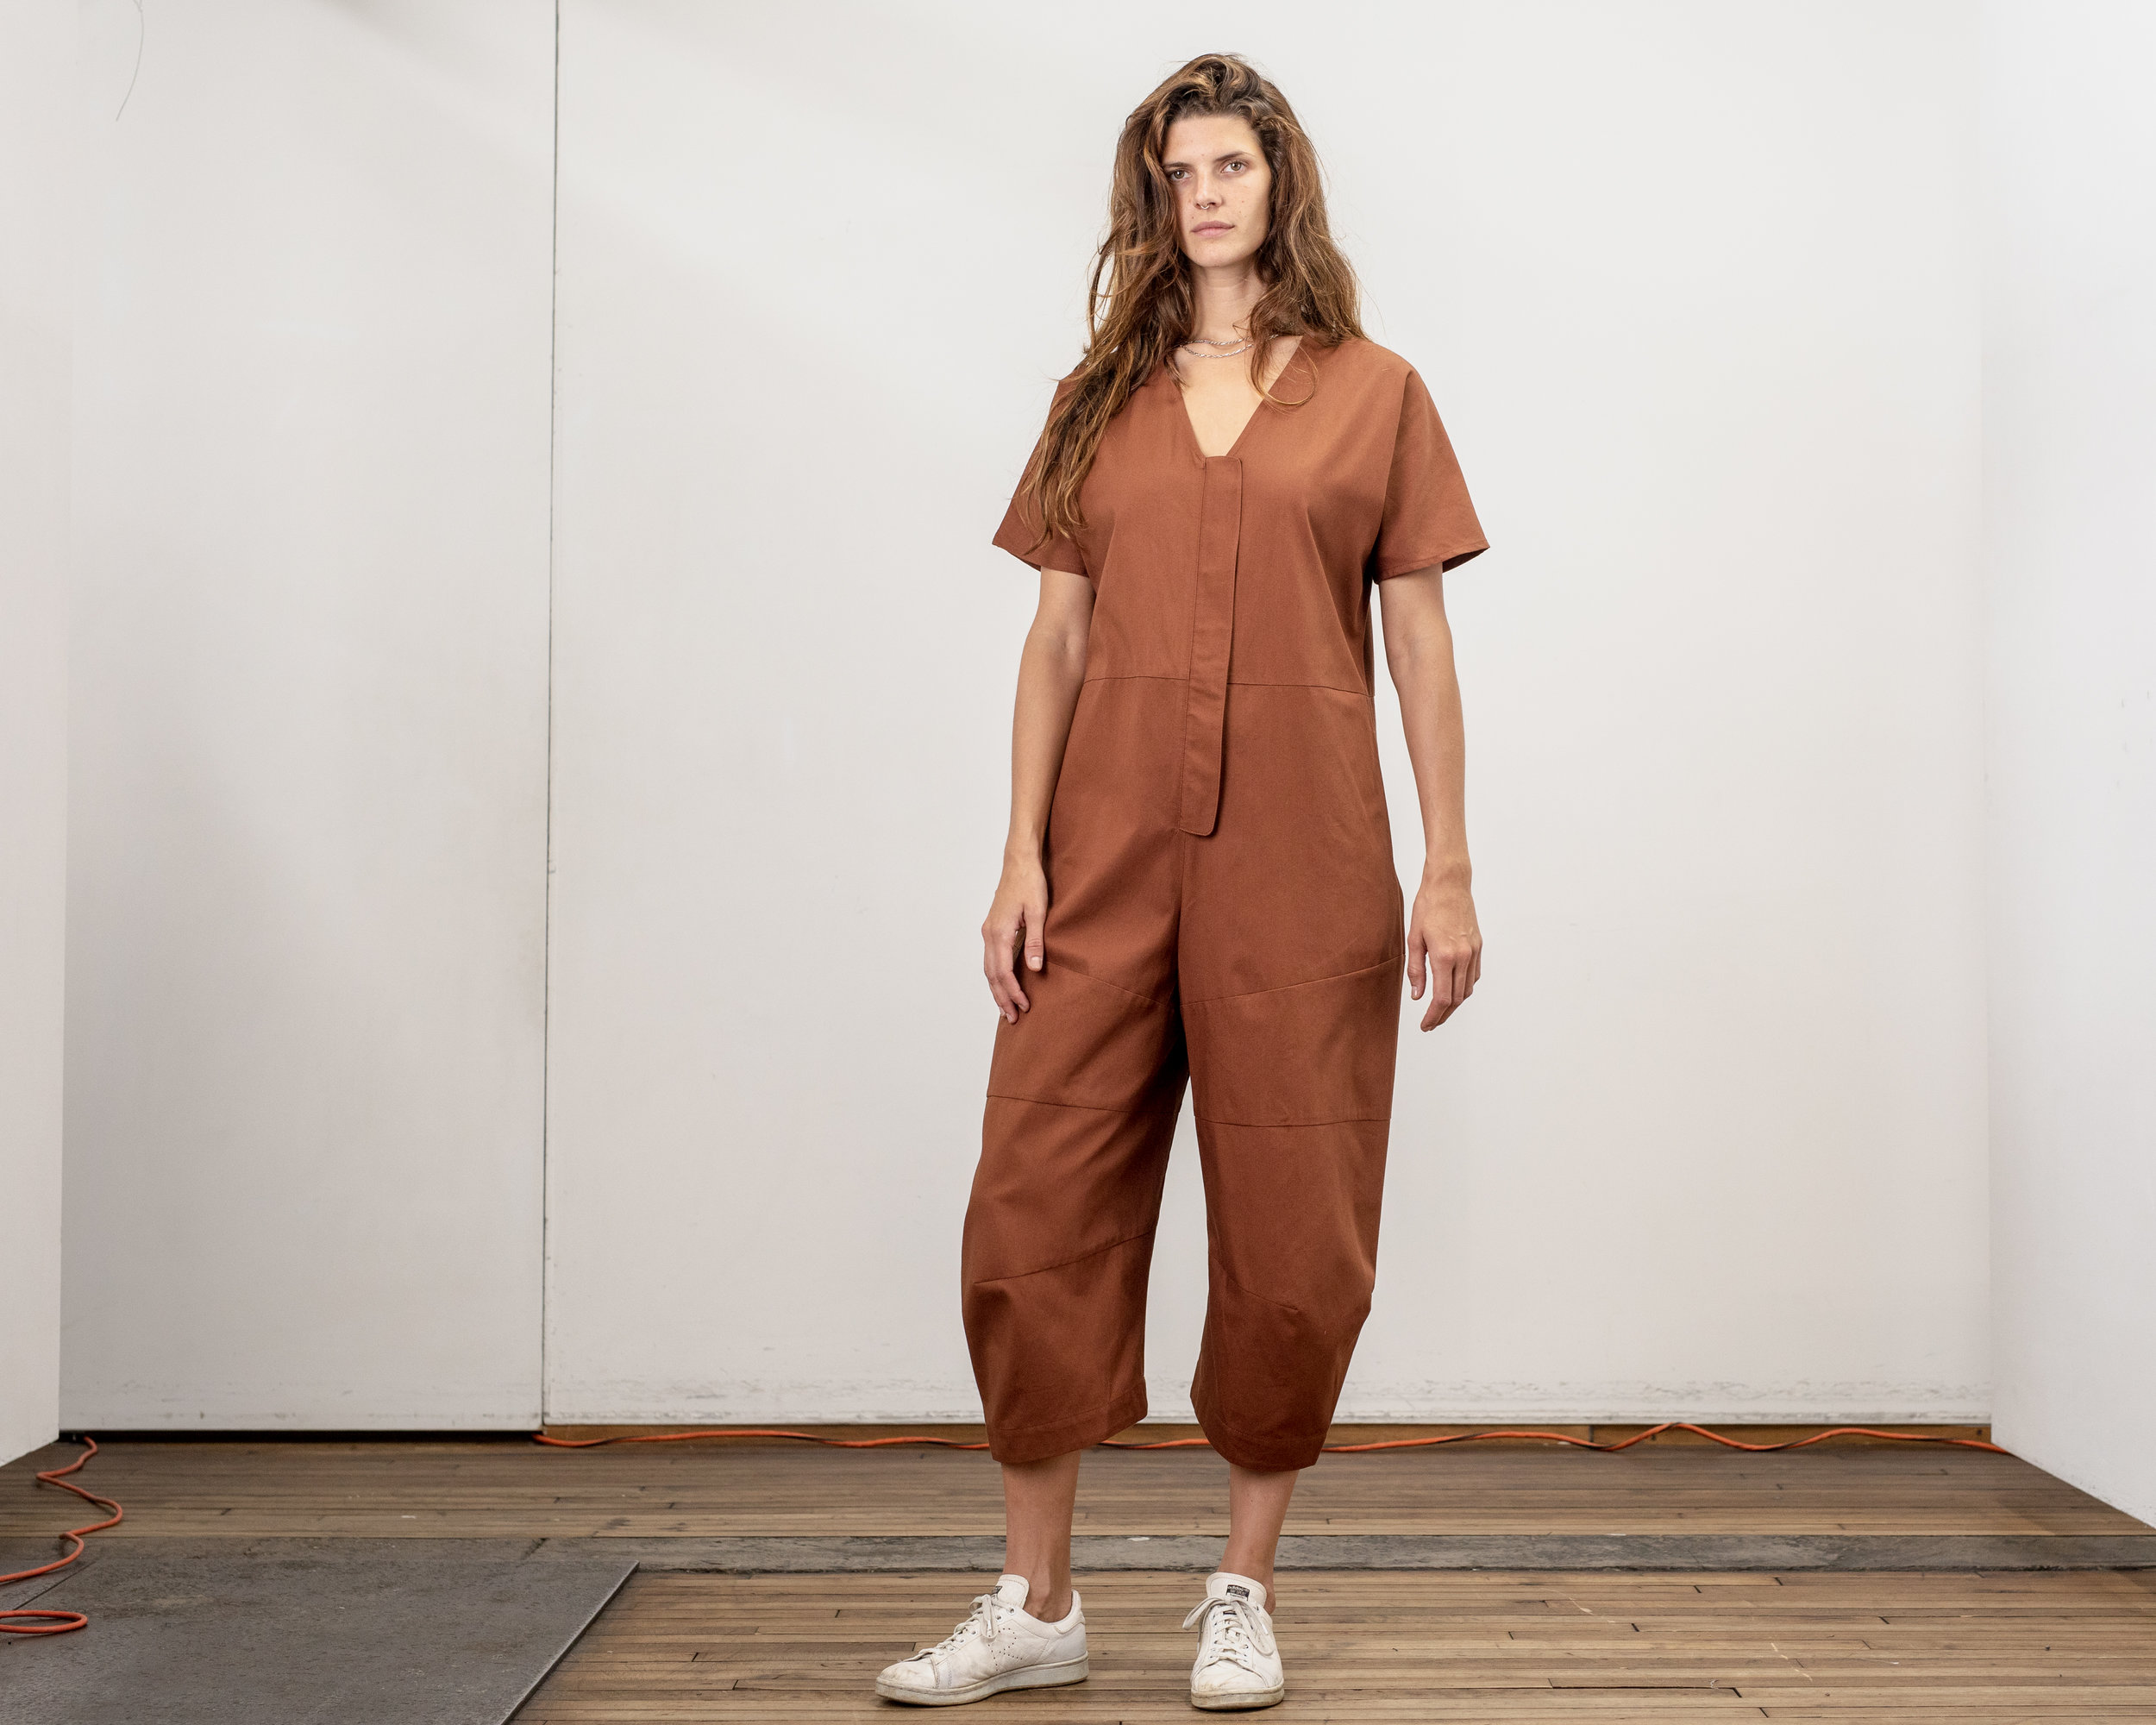 roucha-2019-lookbook-Final-5000px-61.jpg